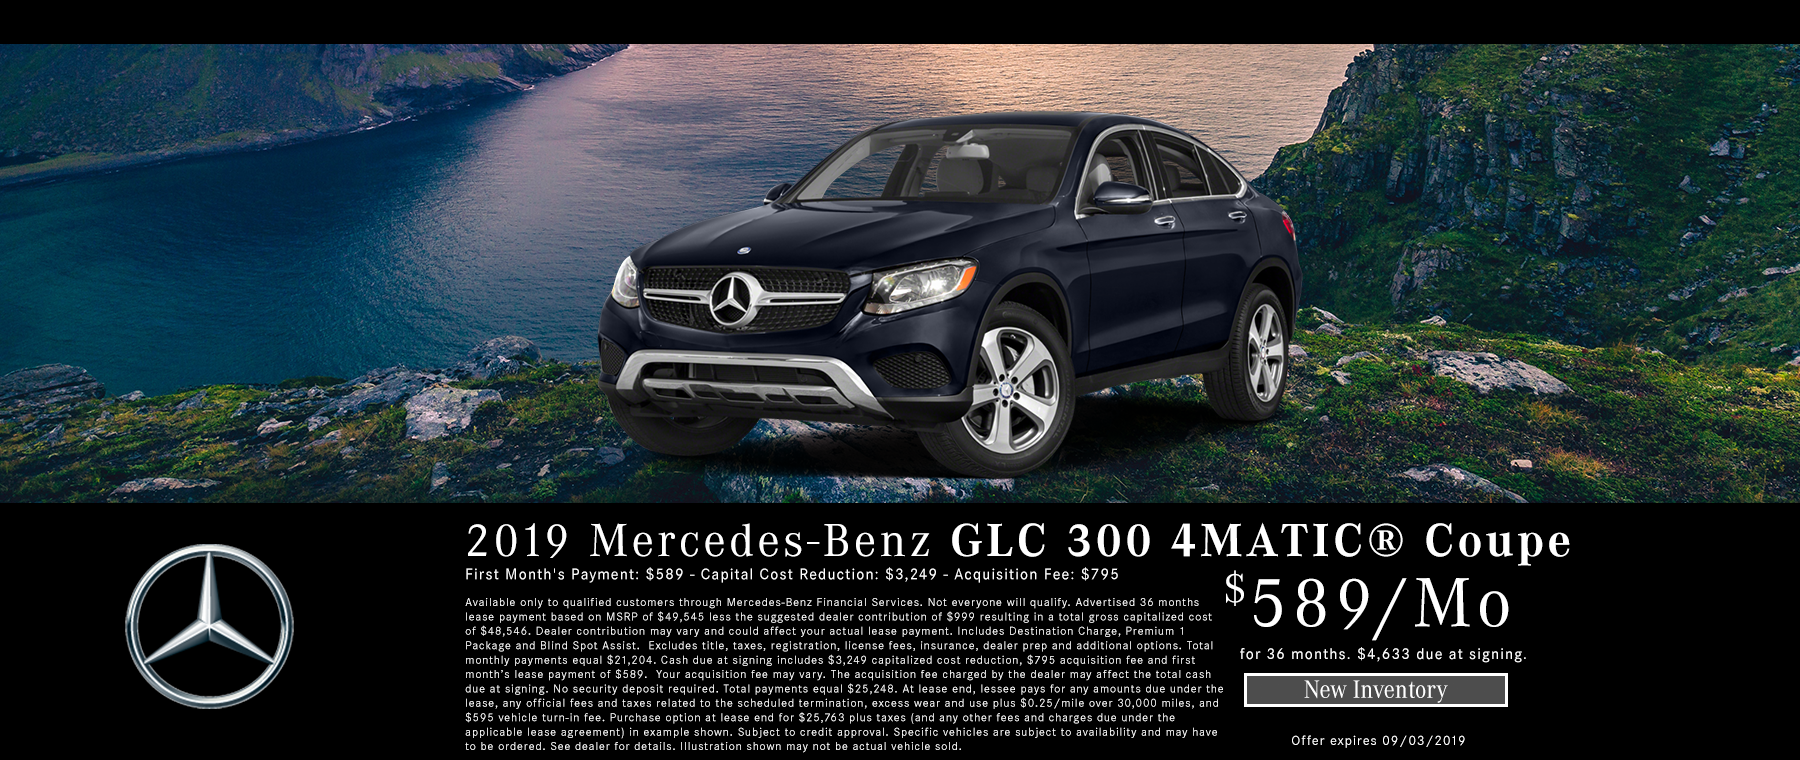 Mercedes Benz Of North Haven Reviews Car >> New Used Cars For Sale In Bakersfield At Mercedes Benz Bakersfield